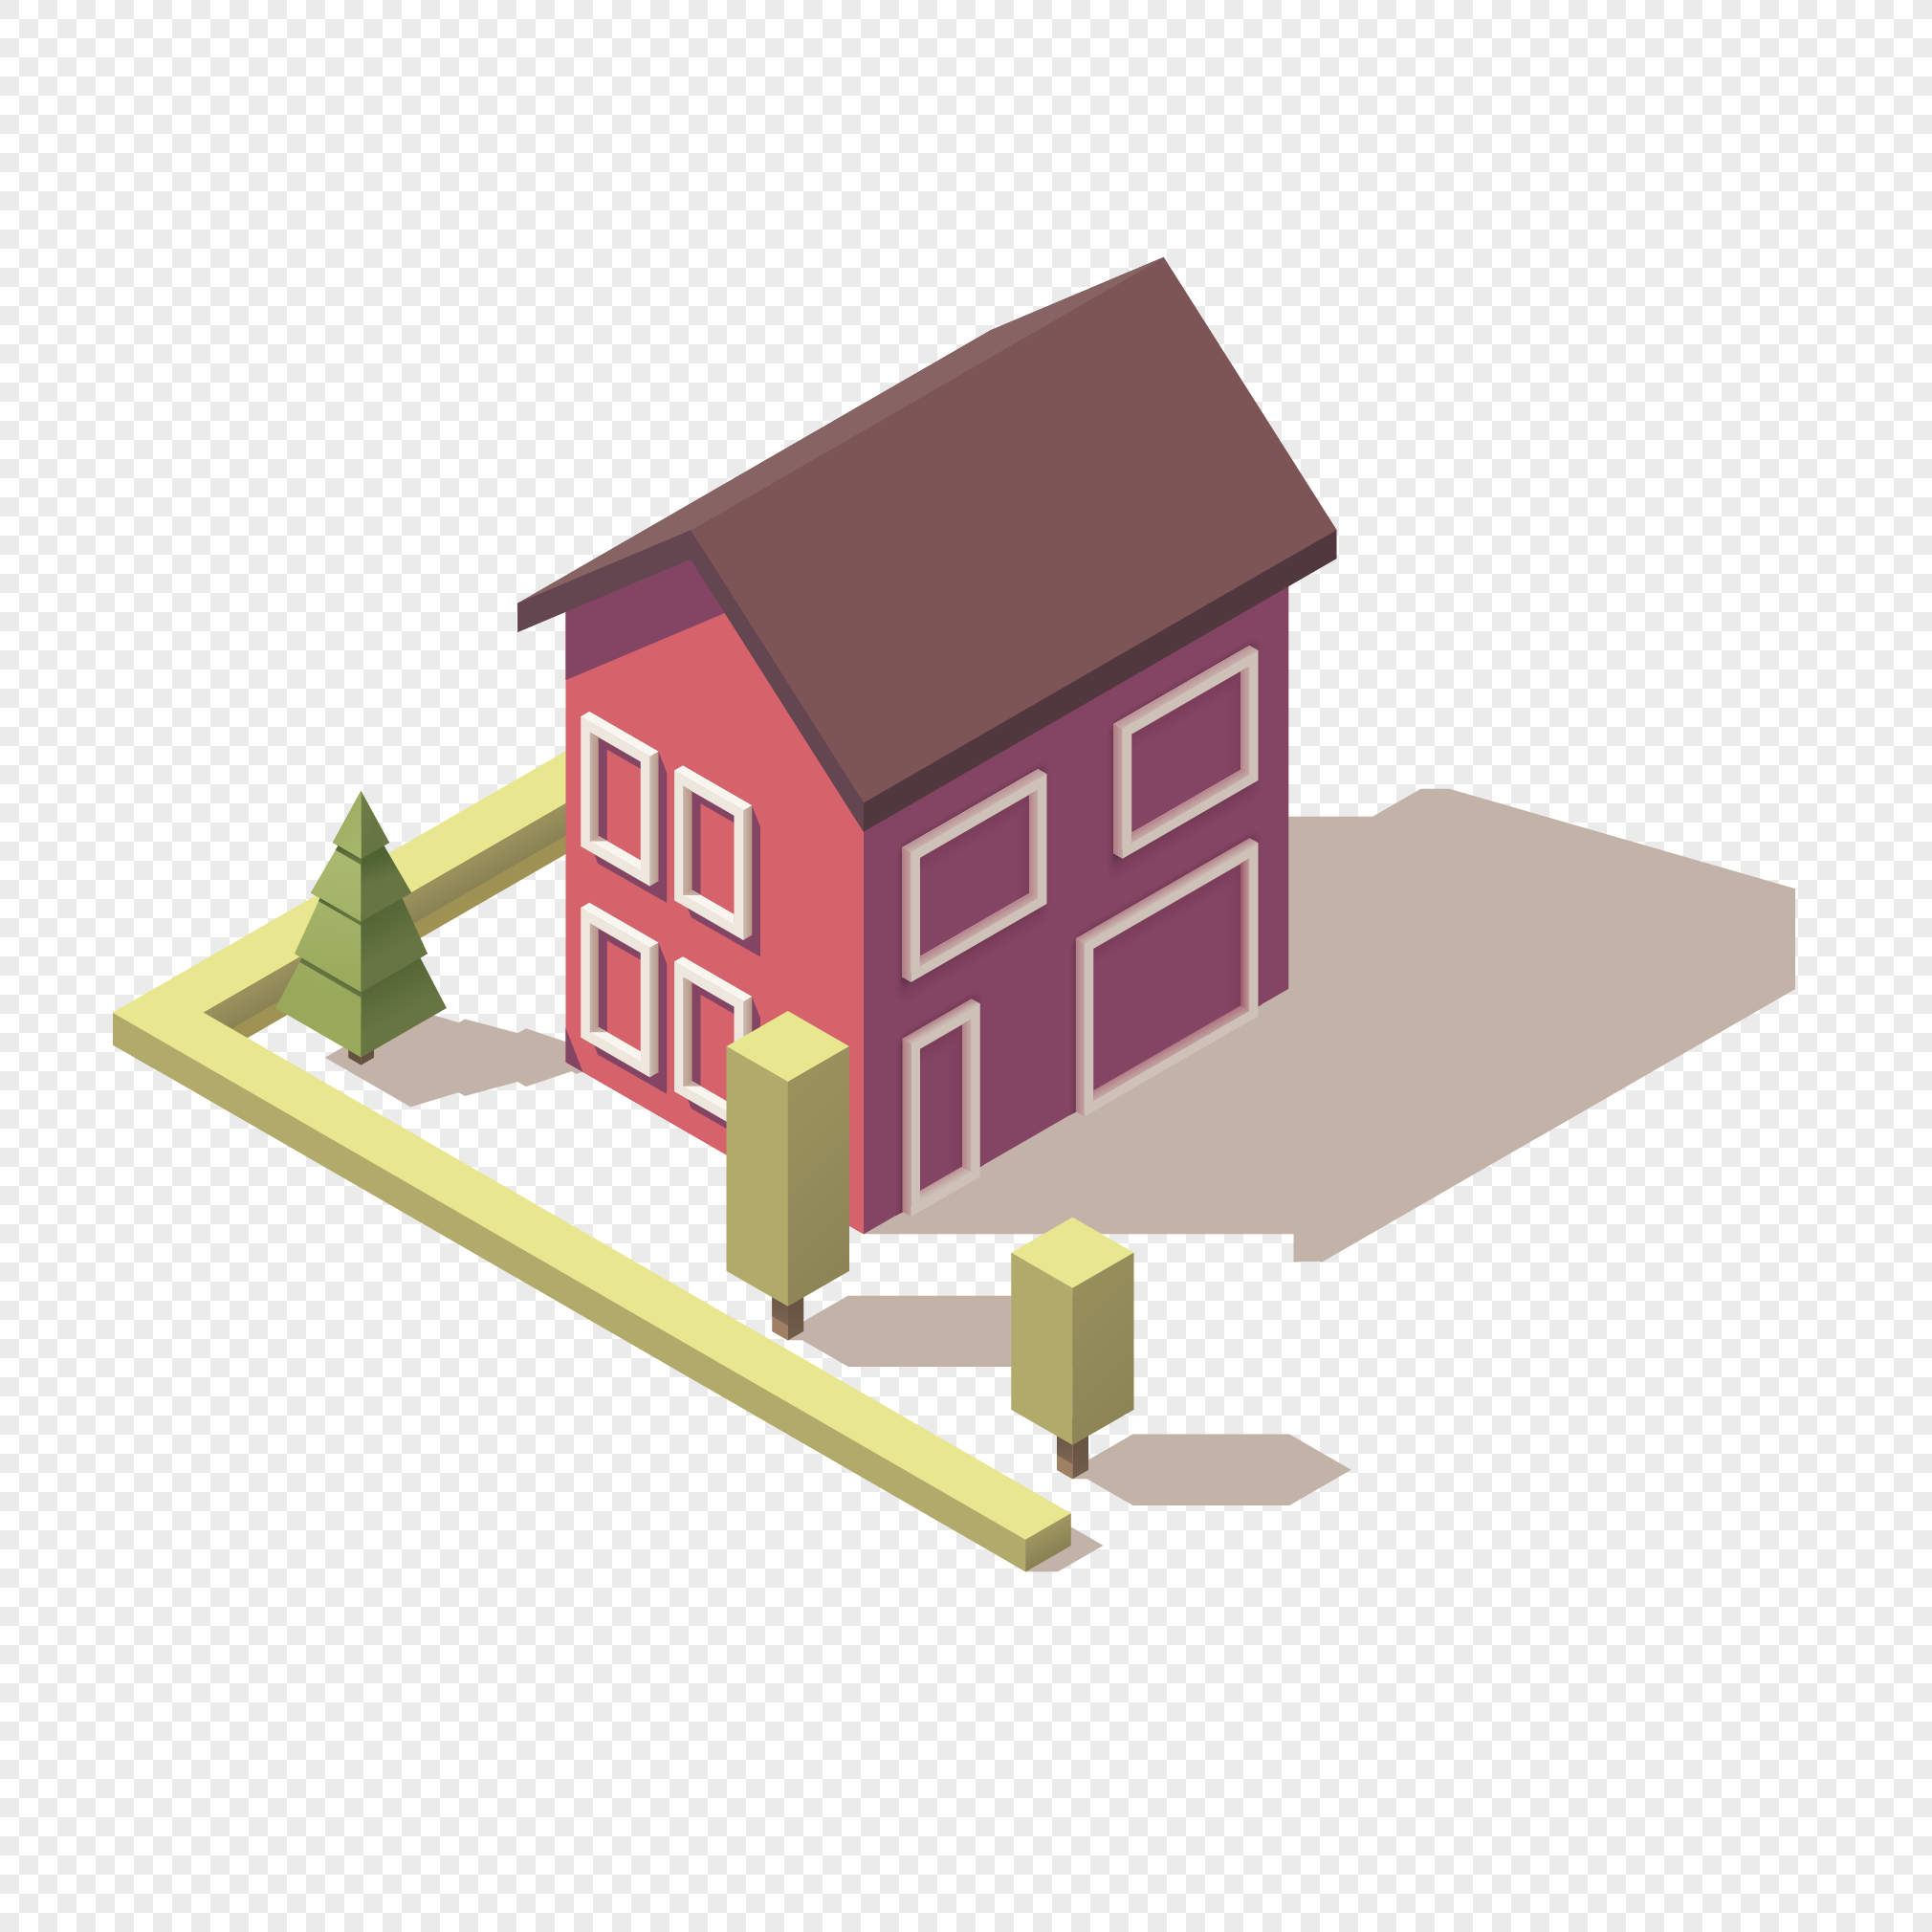 2020x2020 Building Vector Png Image Picture Free Download 400445996